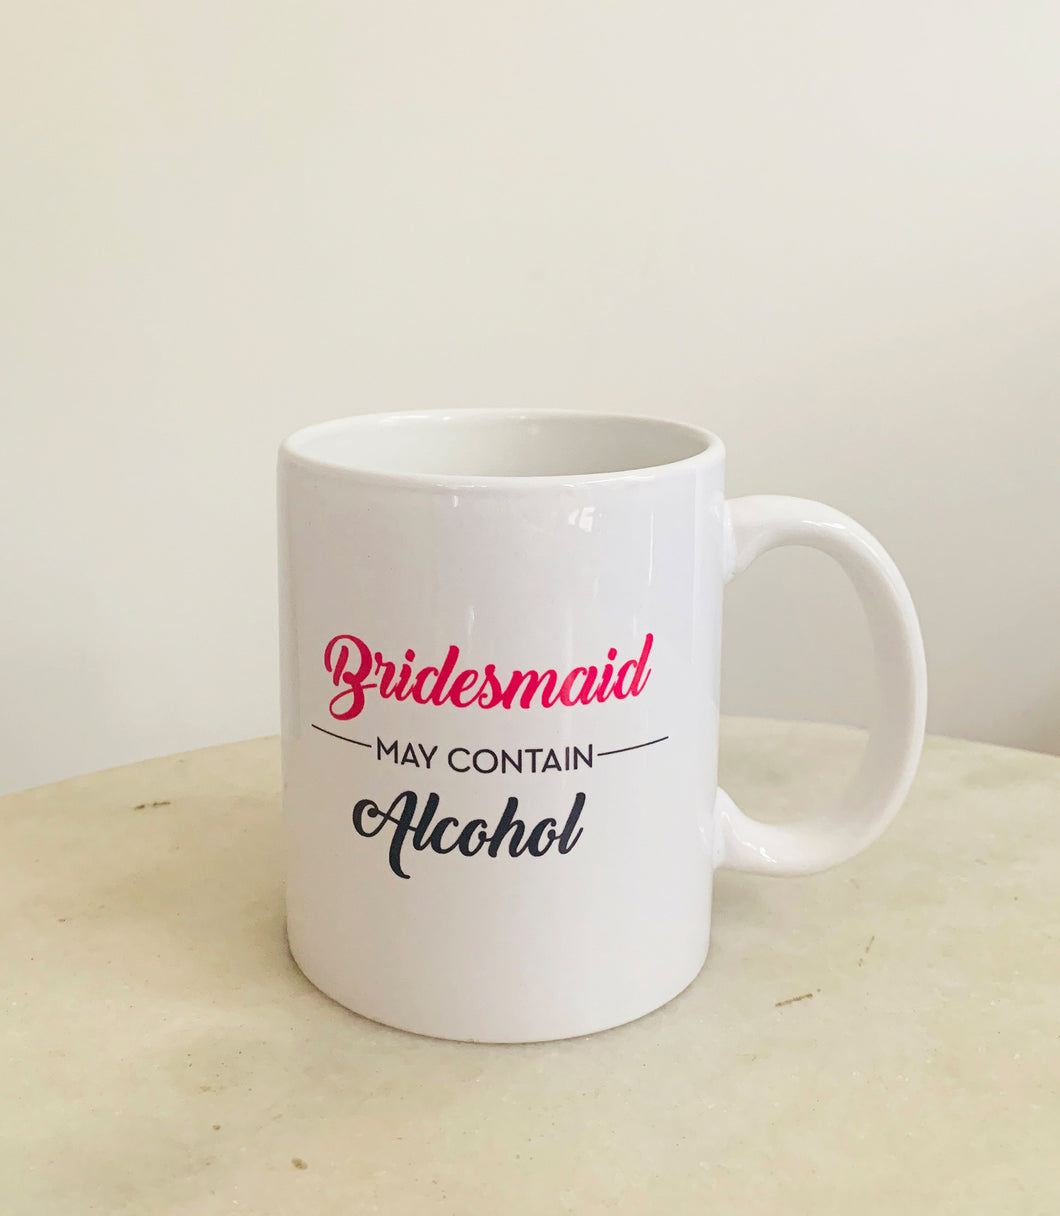 Bridesmaid Alcohol Mug